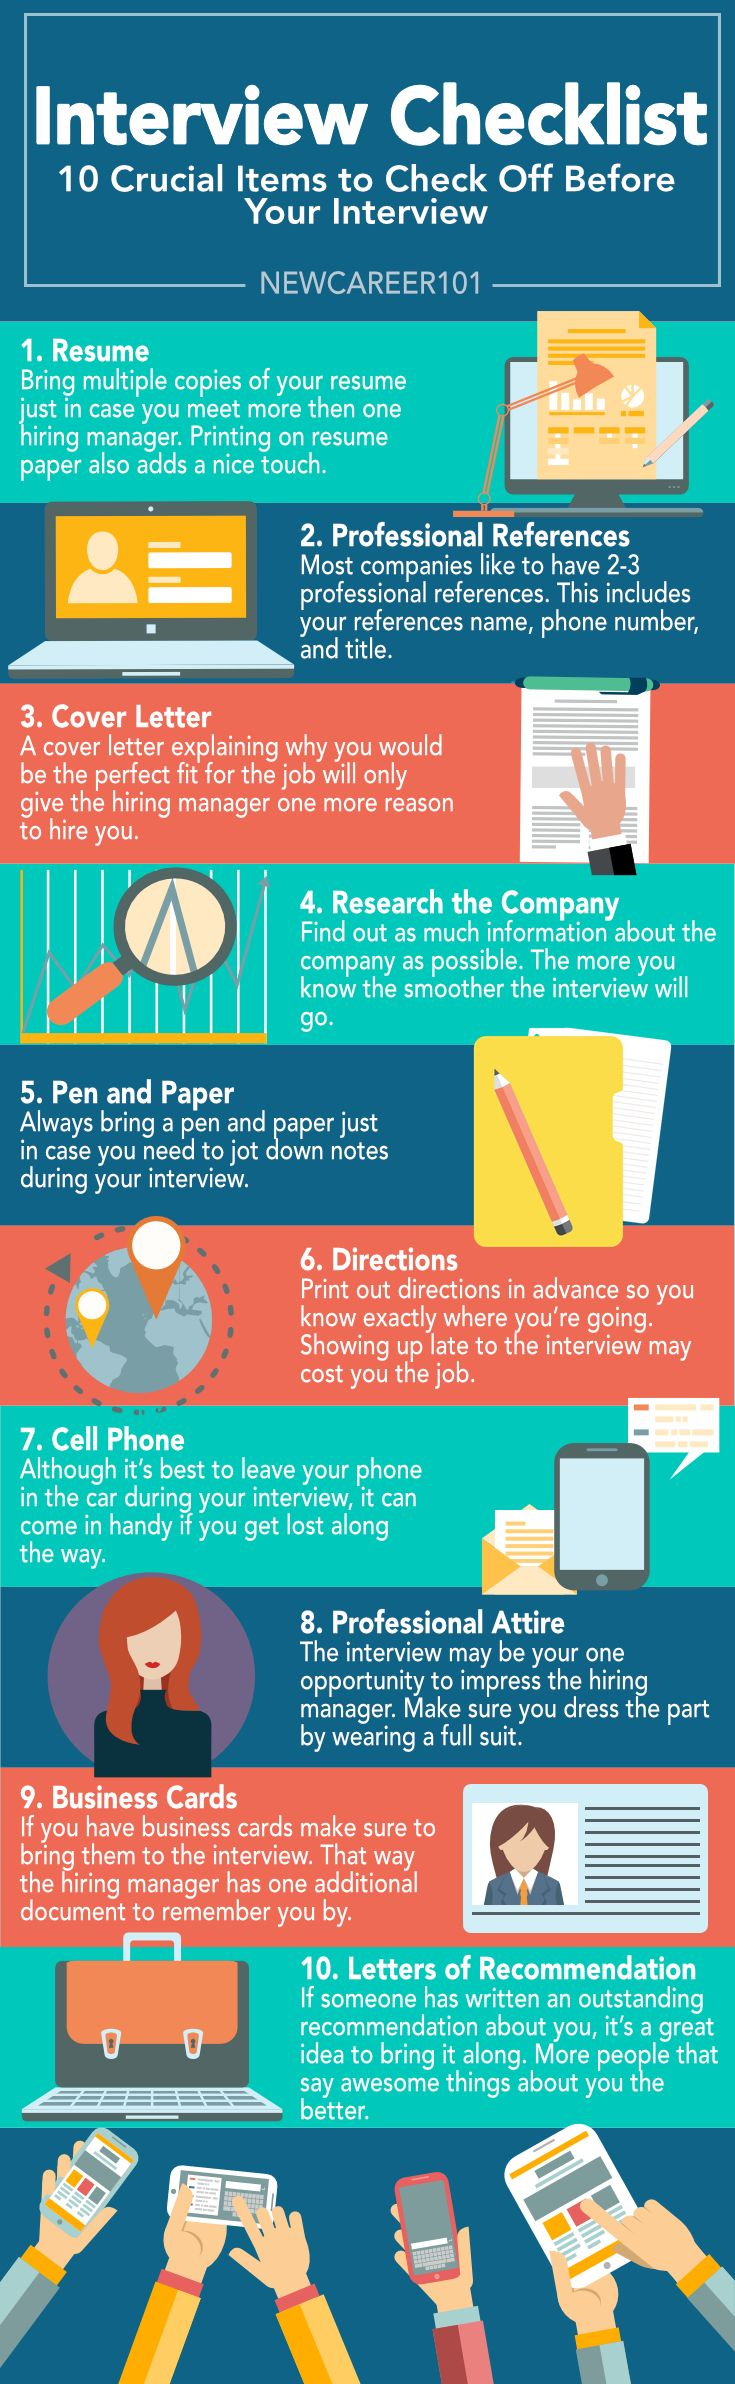 best 25 job employment ideas on pinterest job info job cover